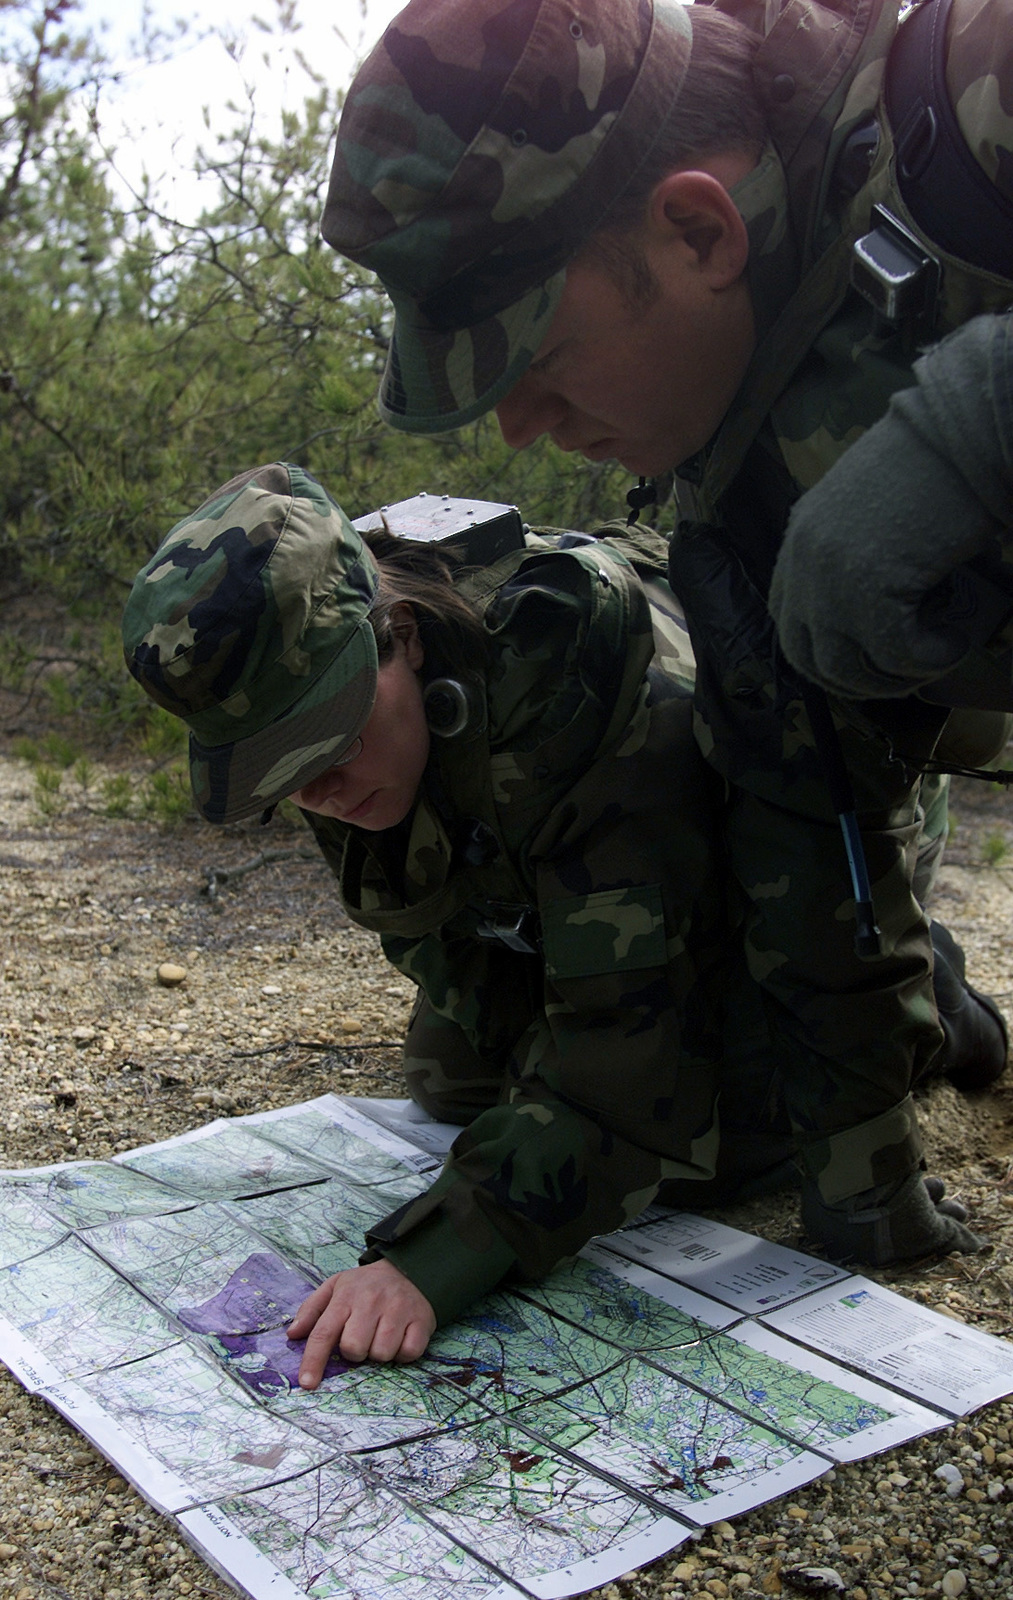 Left side front view, medium close-up as US Air Force AIRMAN First Class Dawn Anderson (l), and Technical Sergeant Randy Lewis, find their grid coordinates on a map during the Land Navigation portion of the Phoenix Readiness Combat Course, Thursday, March 2,2000. A1C Anderson is assigned to the 1ST Combat Camera, Squadron, Charleston AFB, South Carolina and TSGT Lewis is assigned to the 367th Training Support Squadron, Hill AFB, Utah. Both are deployed to the Air Mobility Warfare Center, Fort Dix, New Jersey, for the Phoenix Readiness Combat Course